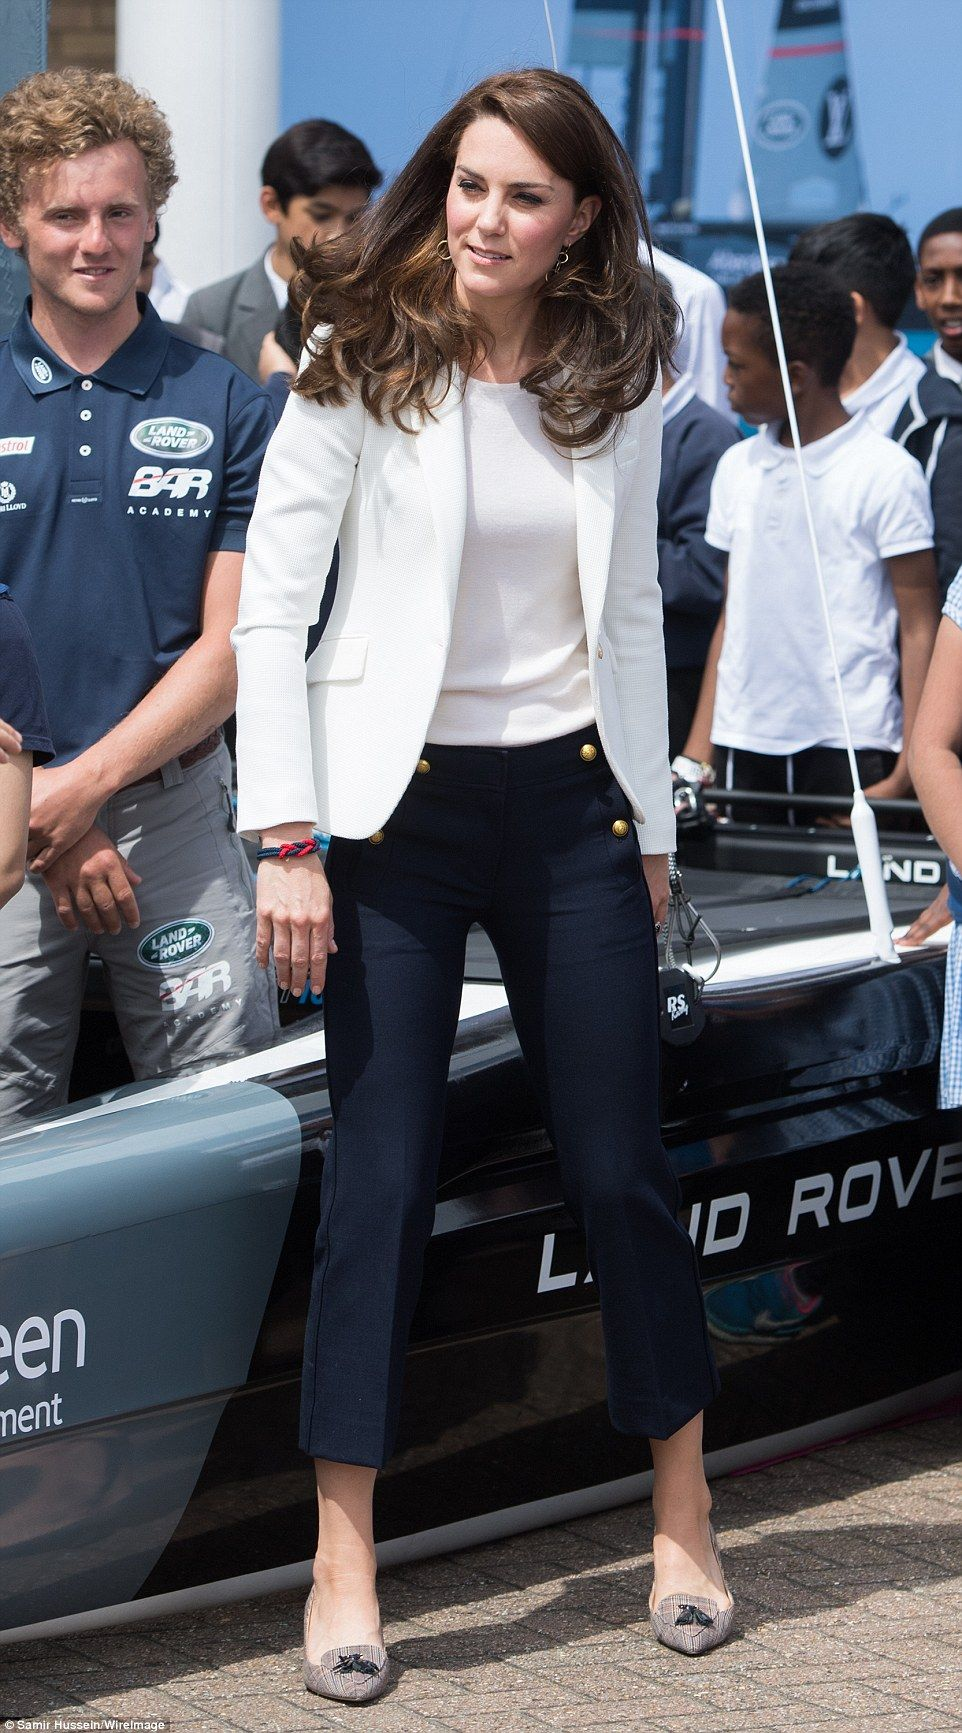 b33c9bf4100e Kate displayed her long legs in chic navy trousers, which she teamed with  trendy heeled shoes from J Crew